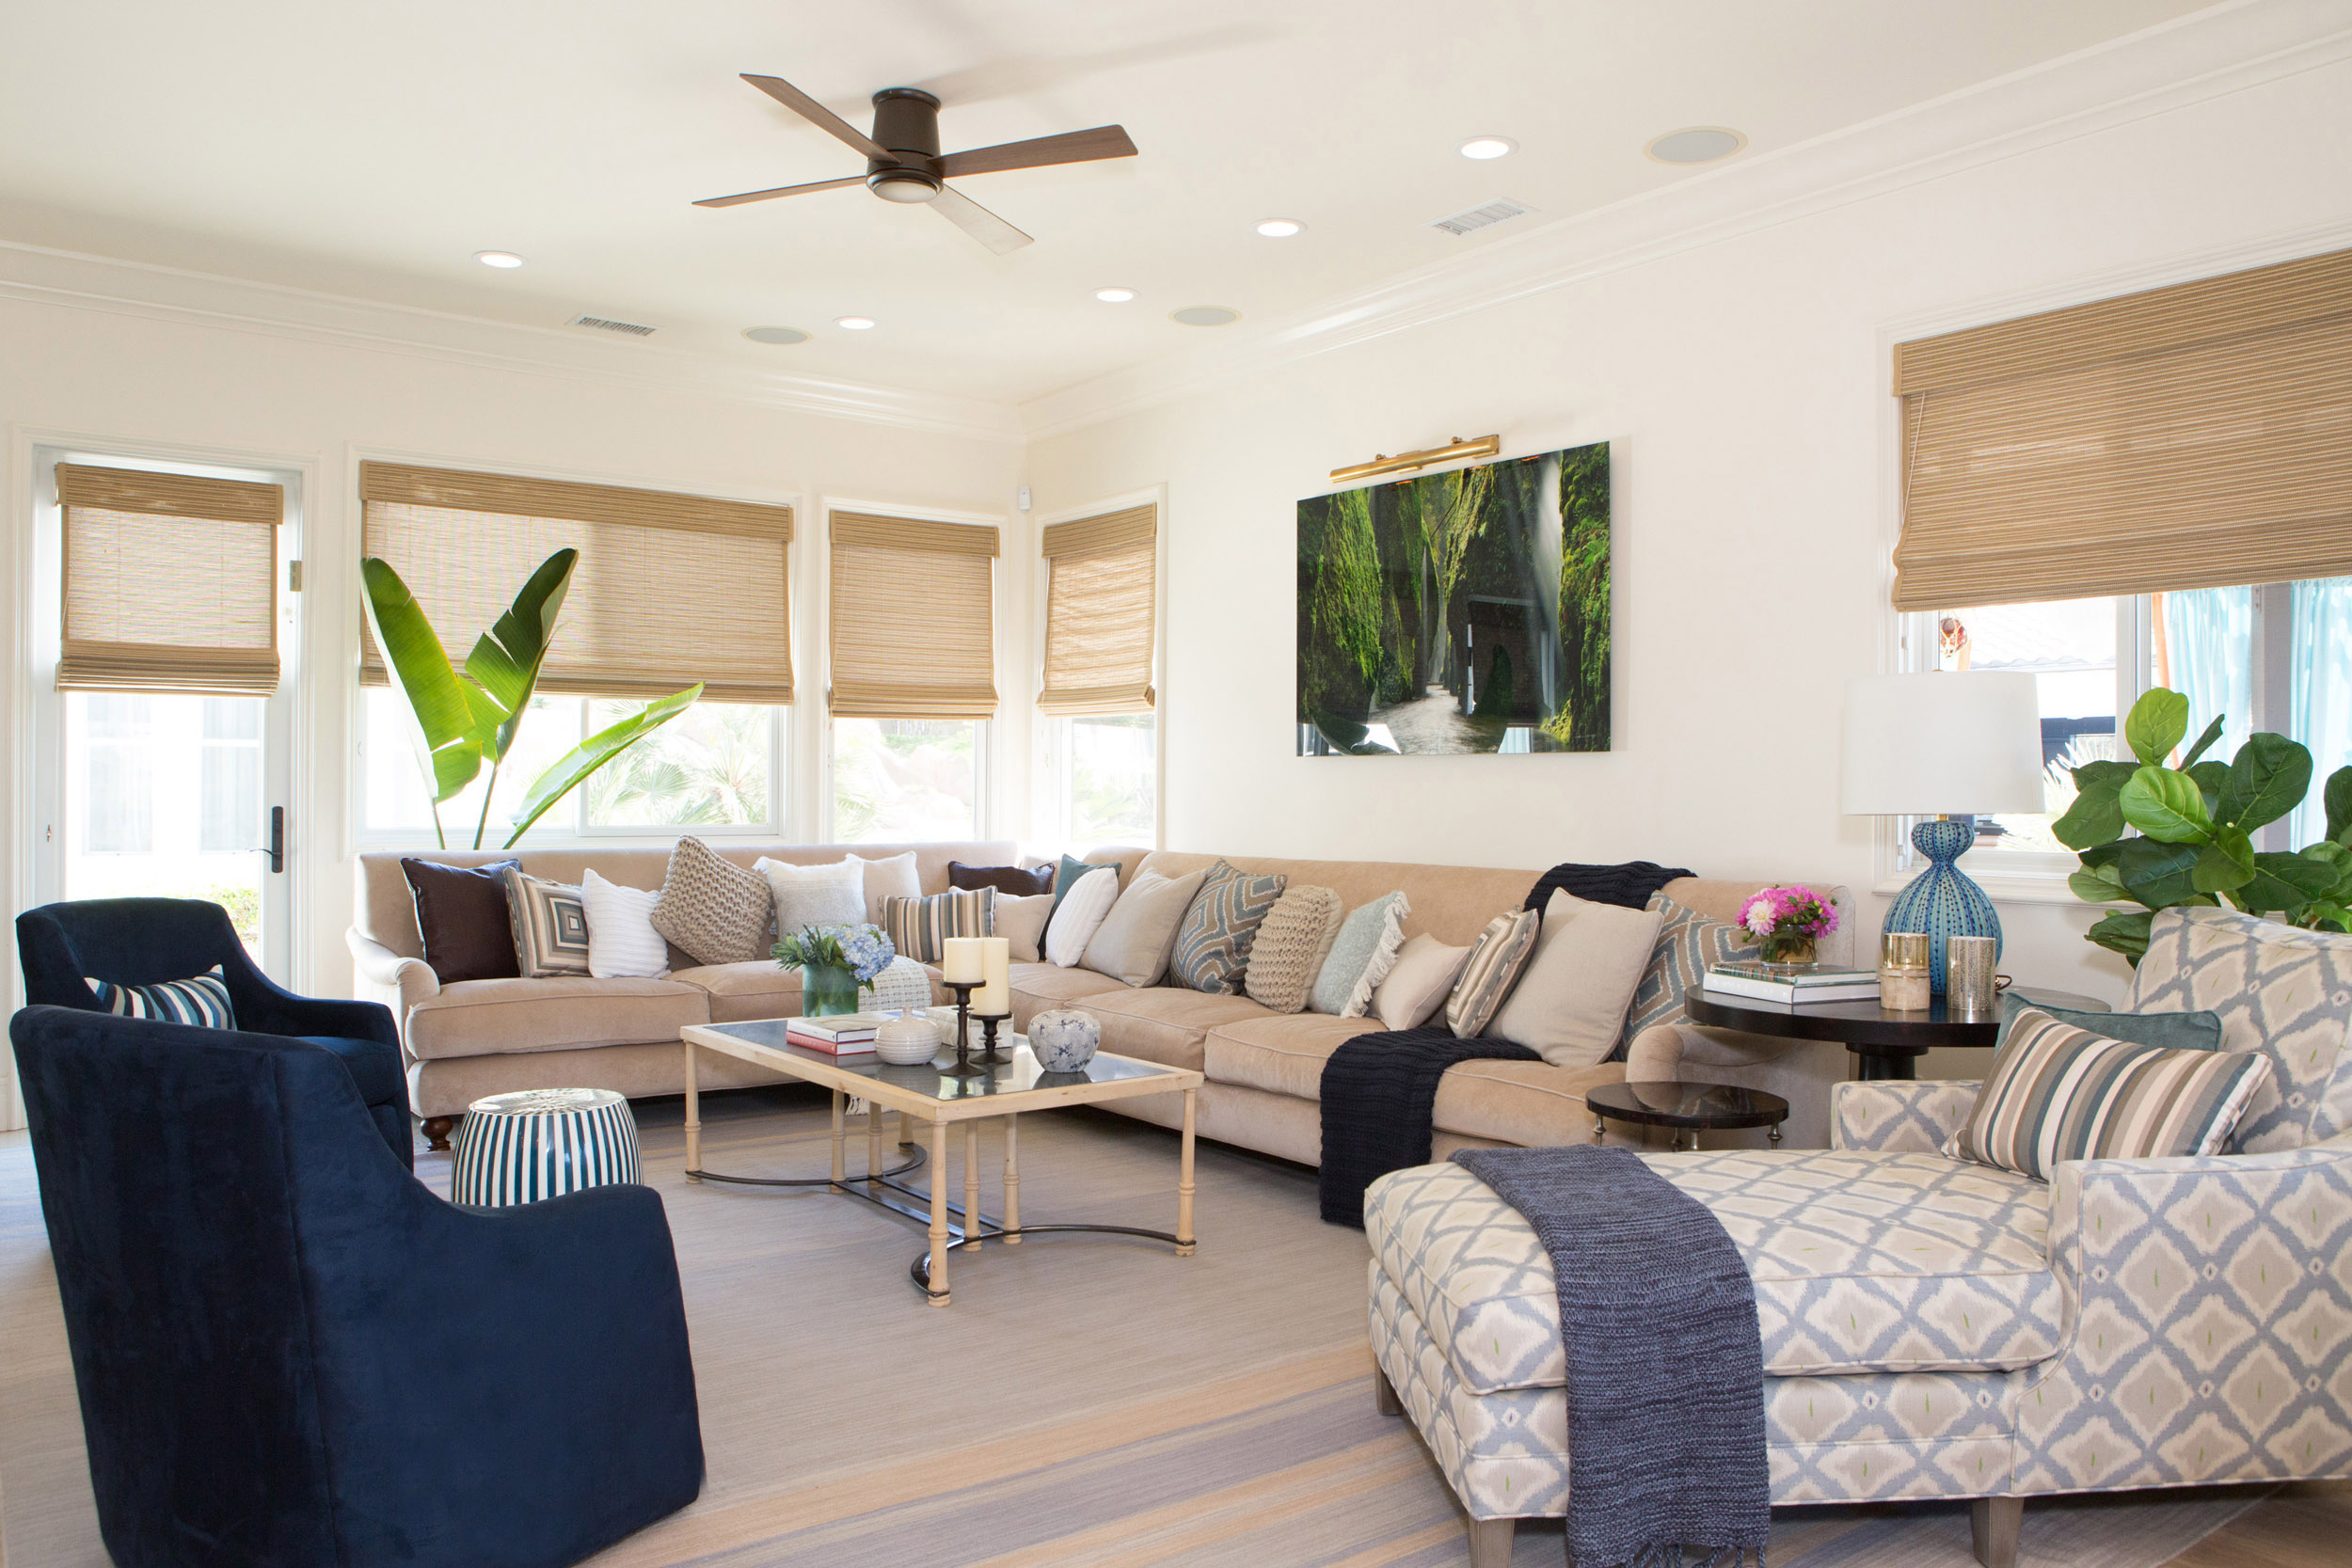 Contemporary Living Room Styled for Spring